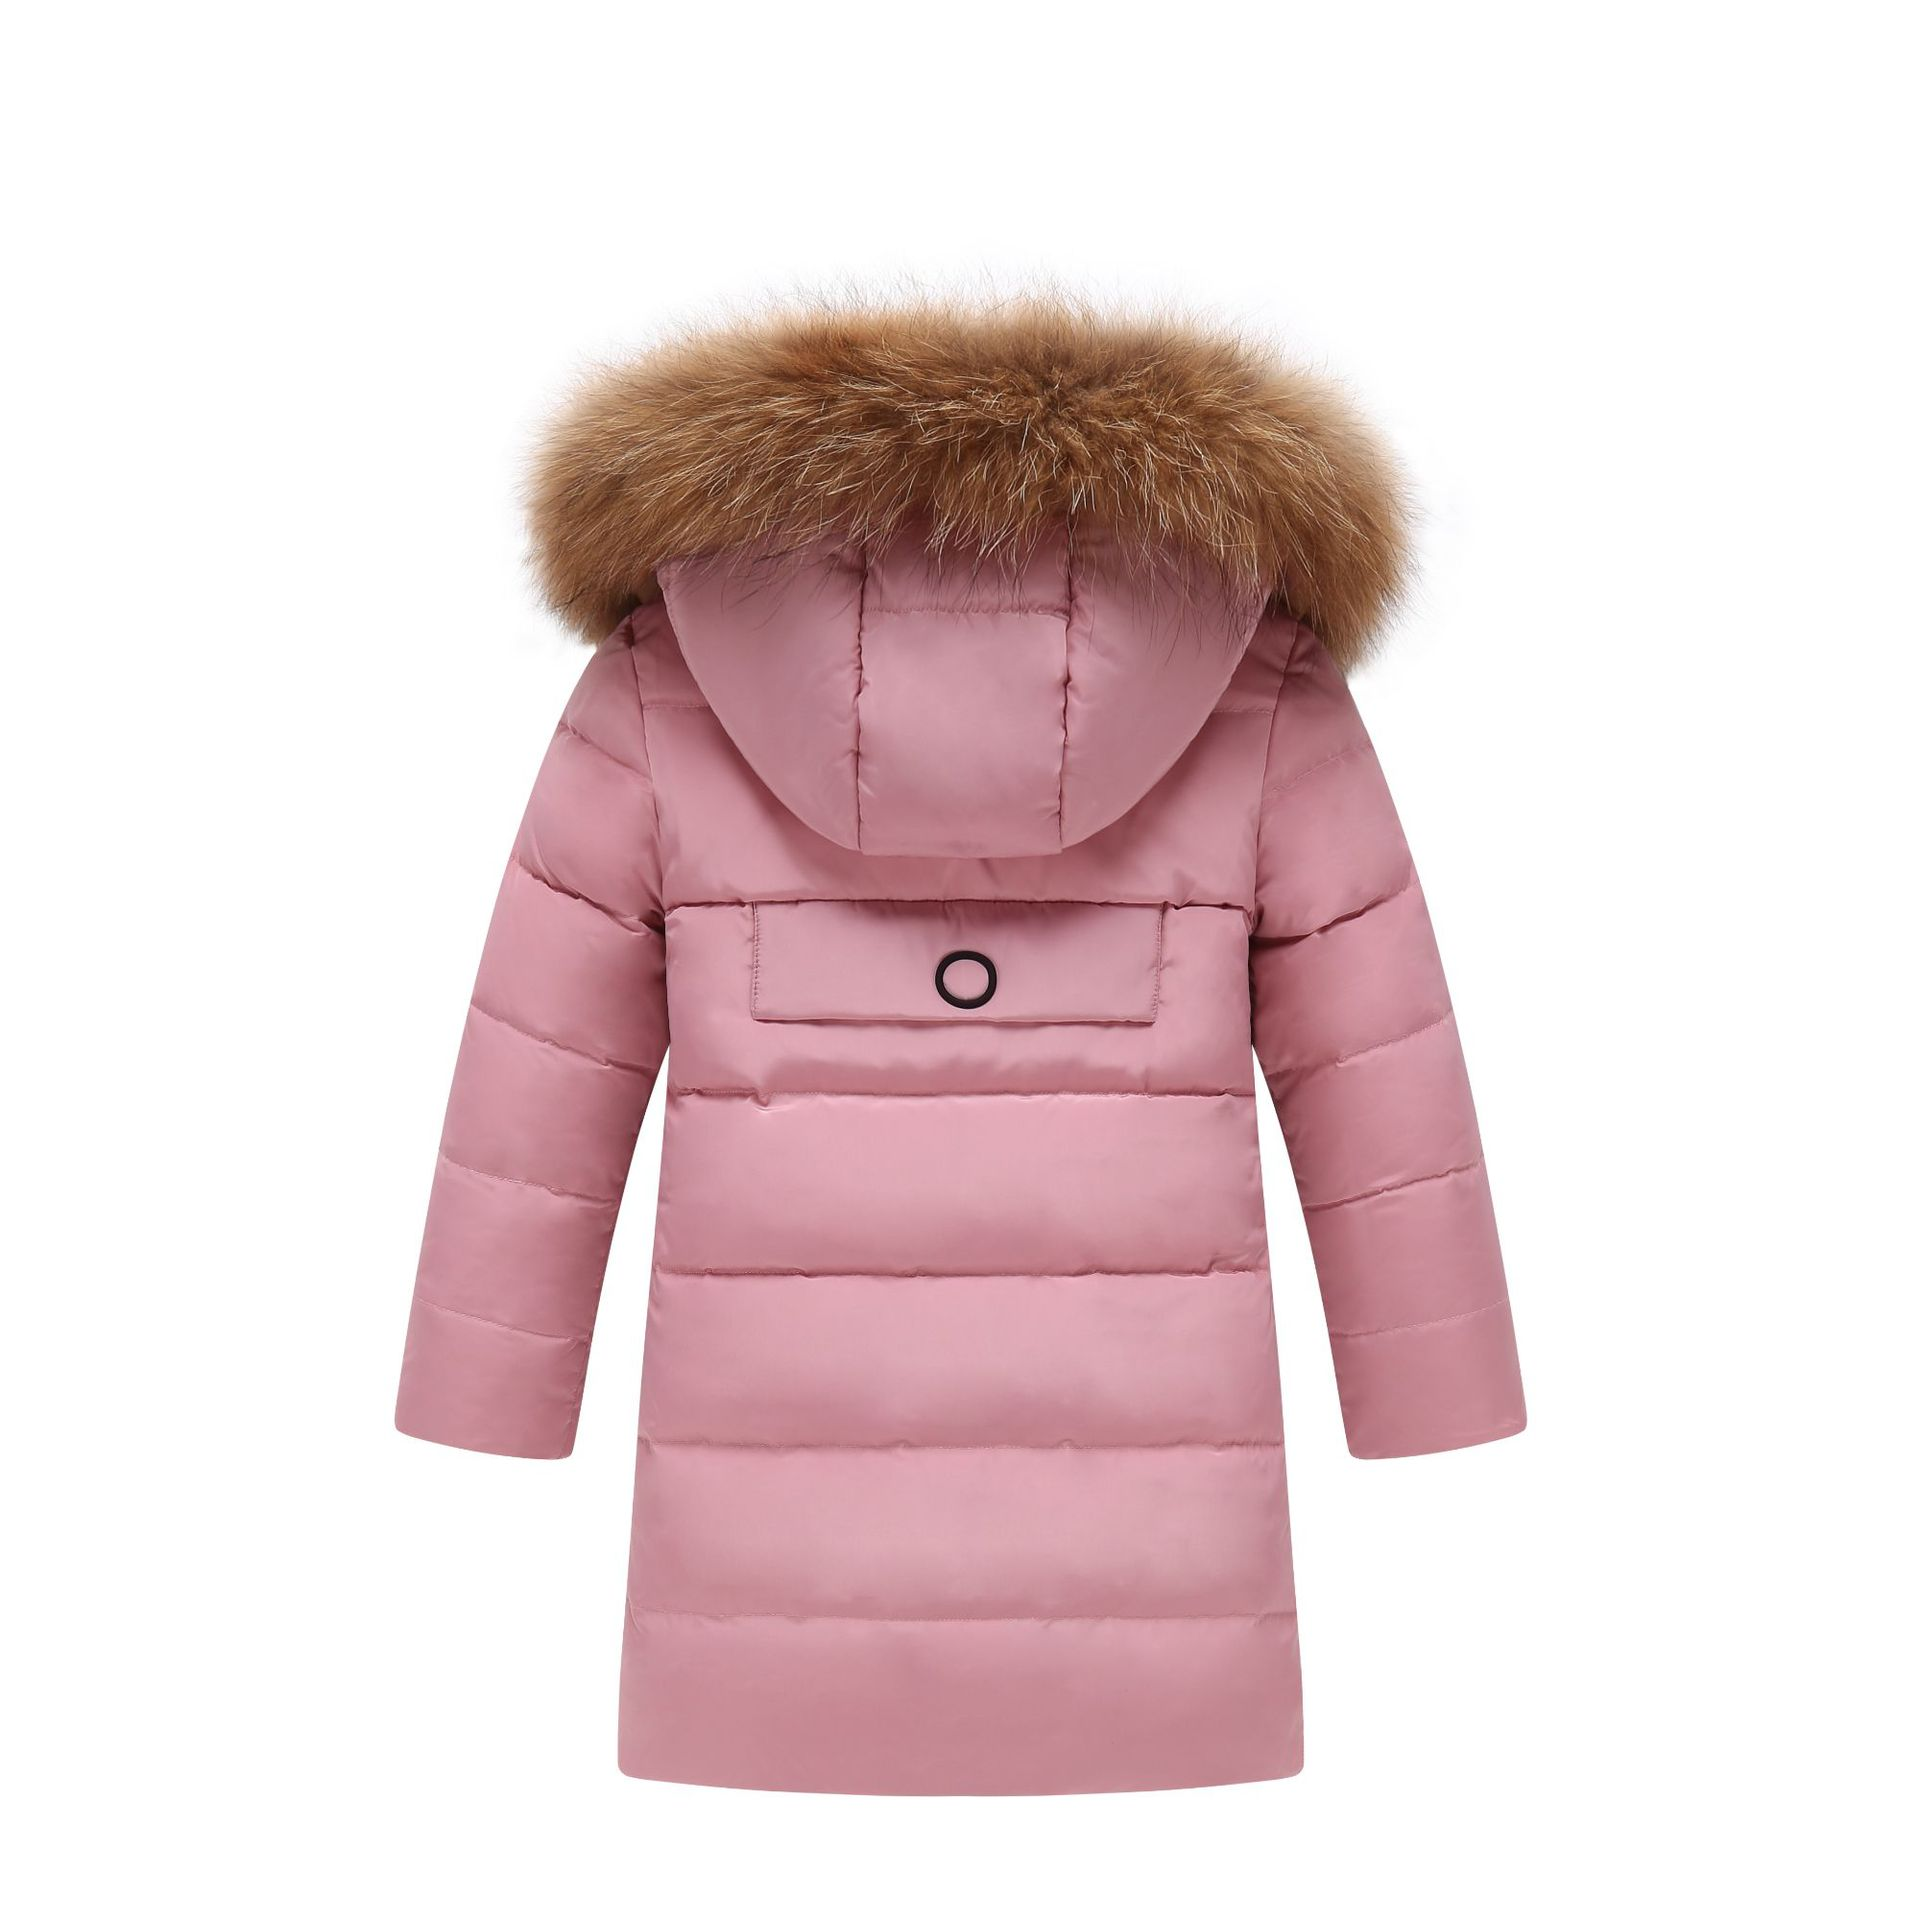 Image 5 - Children Winter Jacket Fur Collar Kids Duck Down Parkas Coat For Teens Girl 6 8 10 12 14 Years Outerwar Coat Dwq352-in Down & Parkas from Mother & Kids